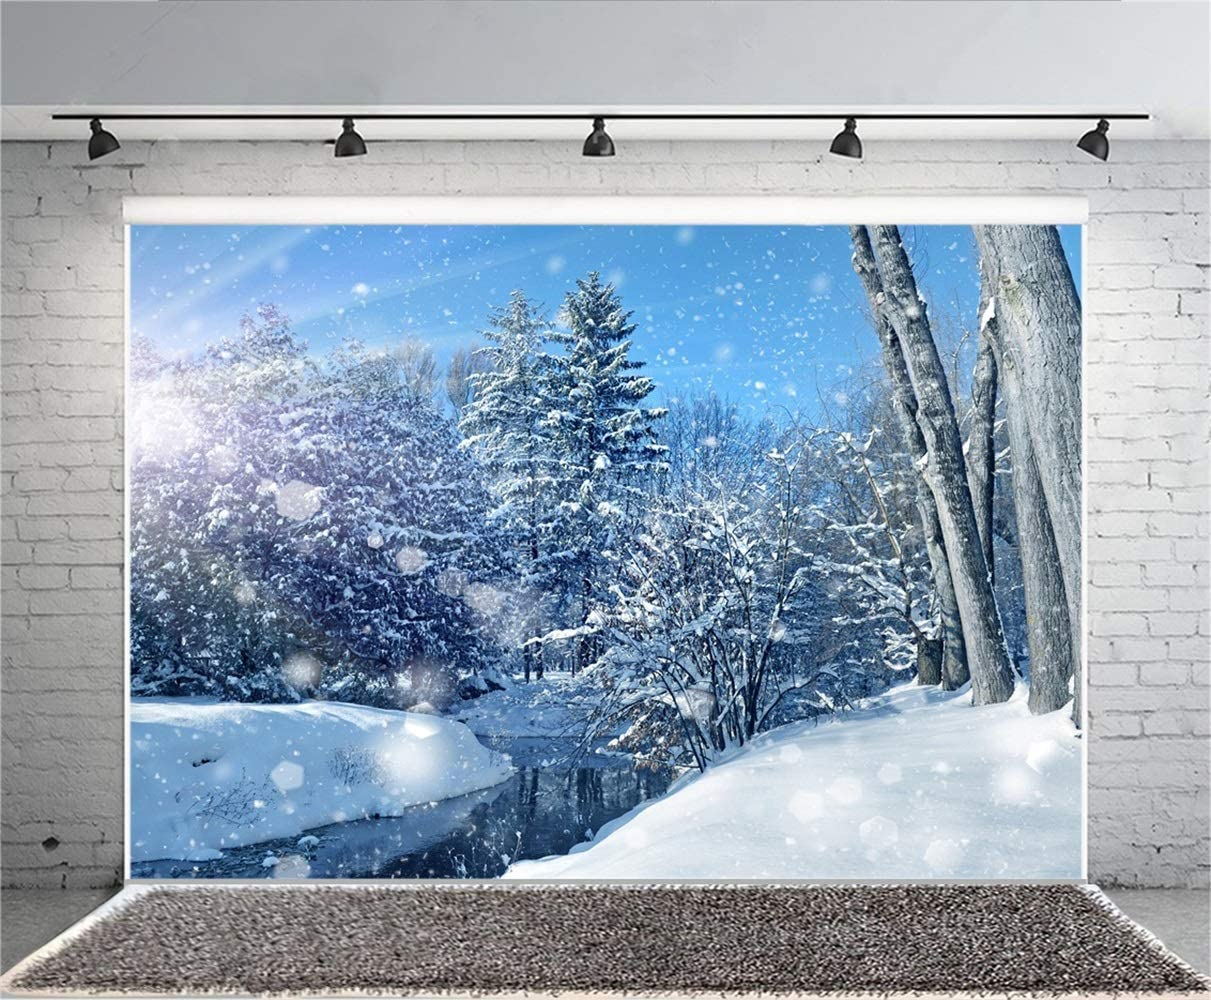 Winter Snowscape Backdrop 10x7 Vinyl Sunshine Frosty Pine Trees Snowy Forest River Haloes Scene Photography Background Winter Scenic Backdrop Kids Baby Shoot Poster Indoor Decors Wallpeper